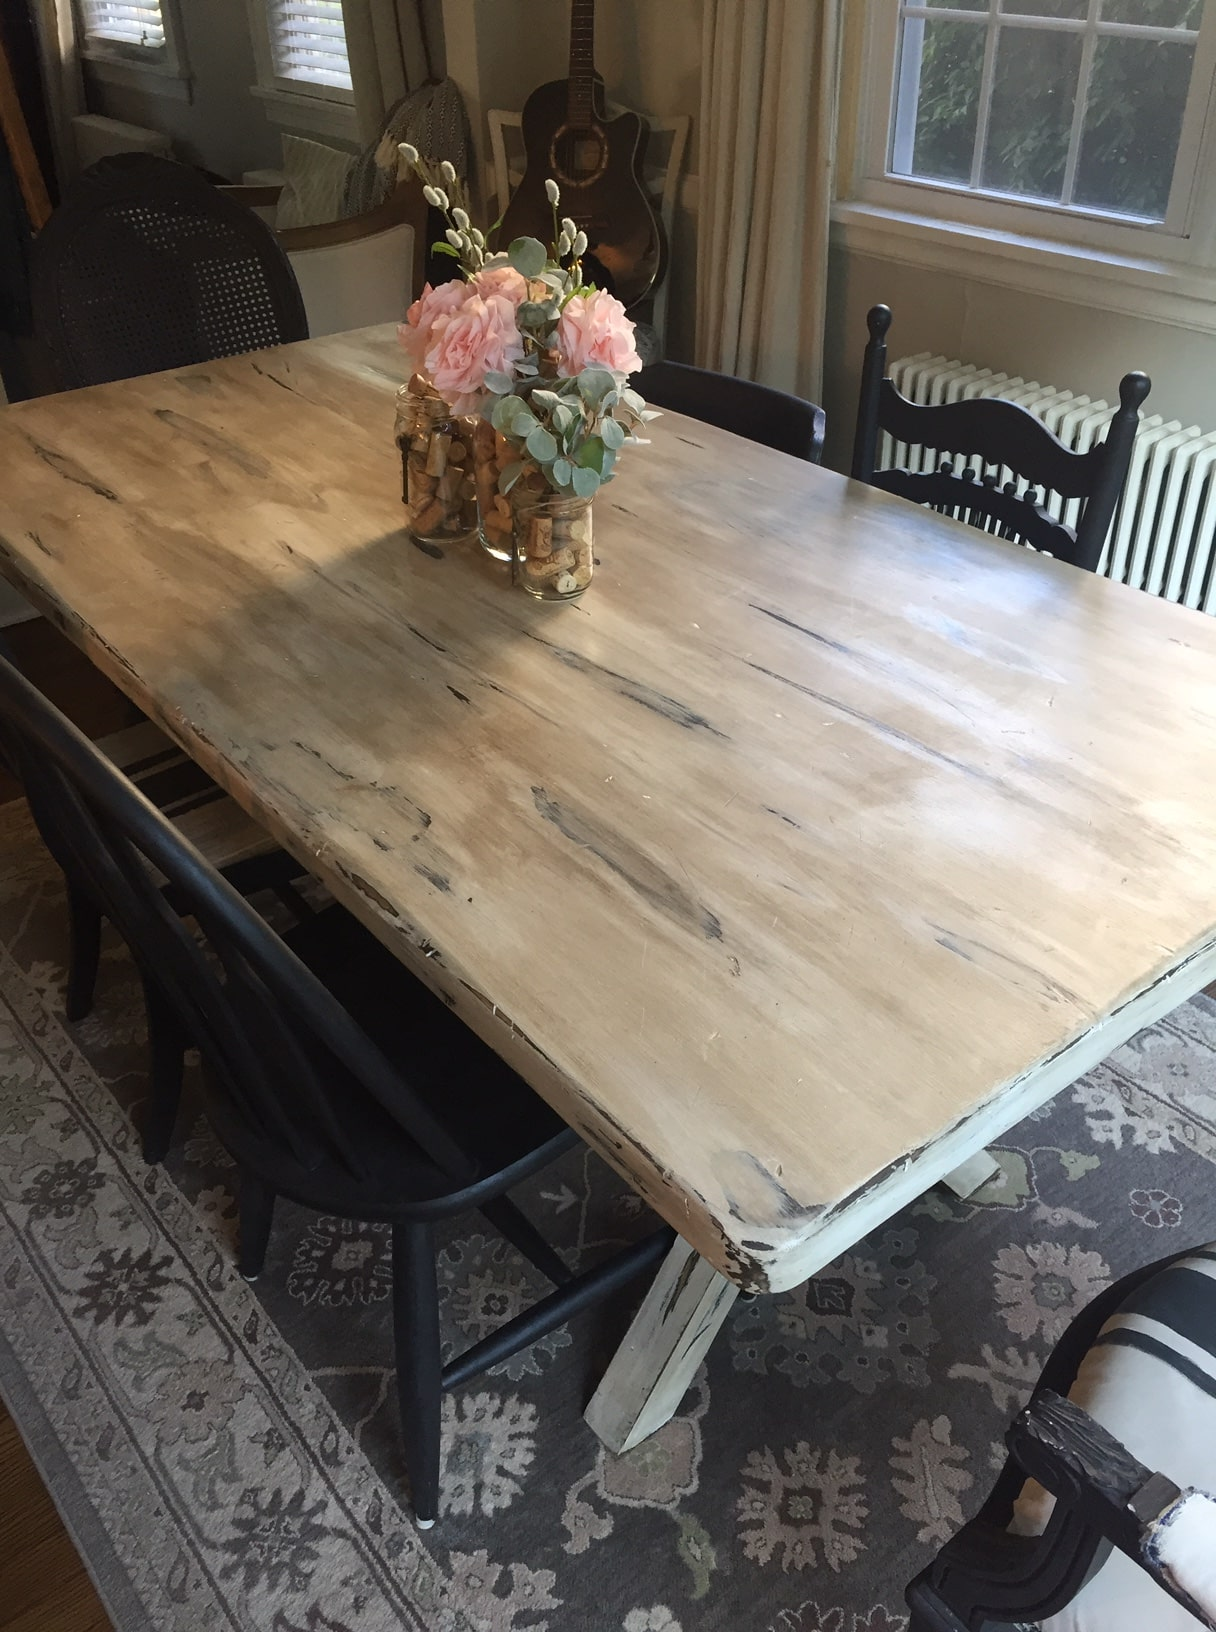 Chalk Paint Dining Room Table – Is it a Good Idea? - West Magnolia